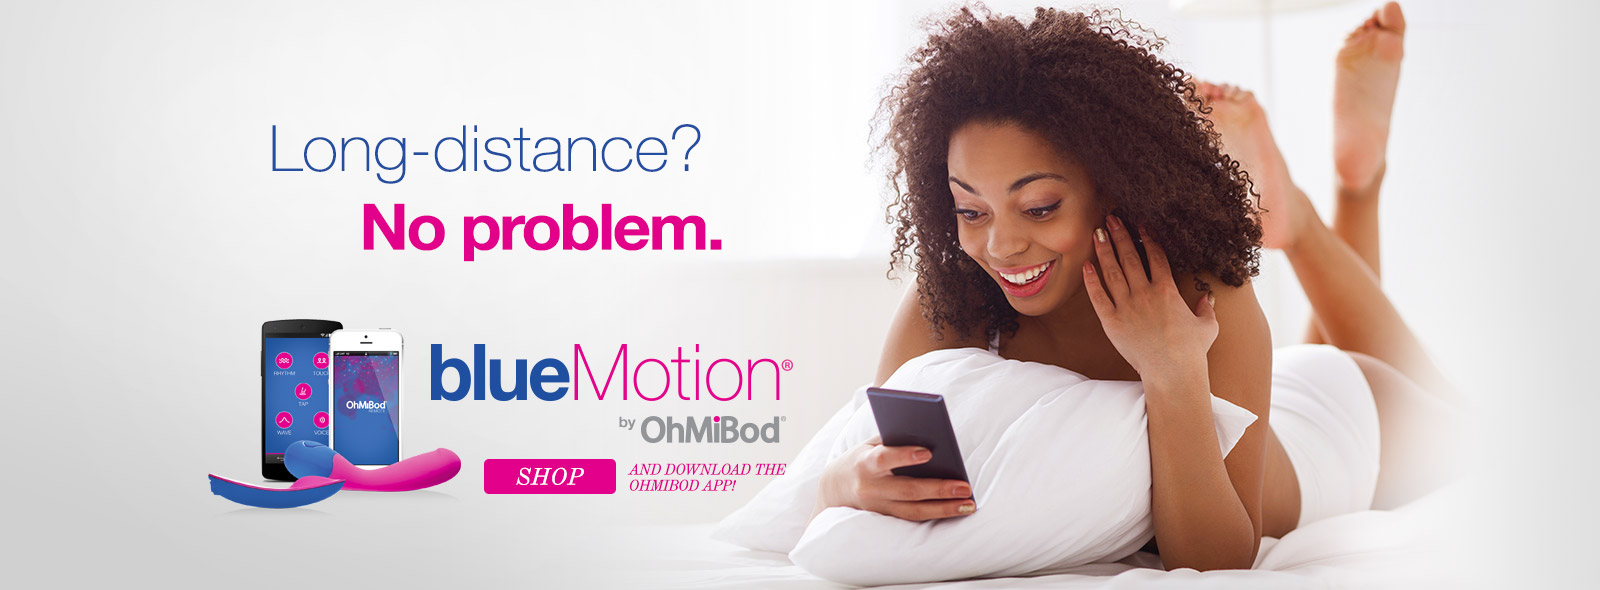 BlueMotion by OhMiBod